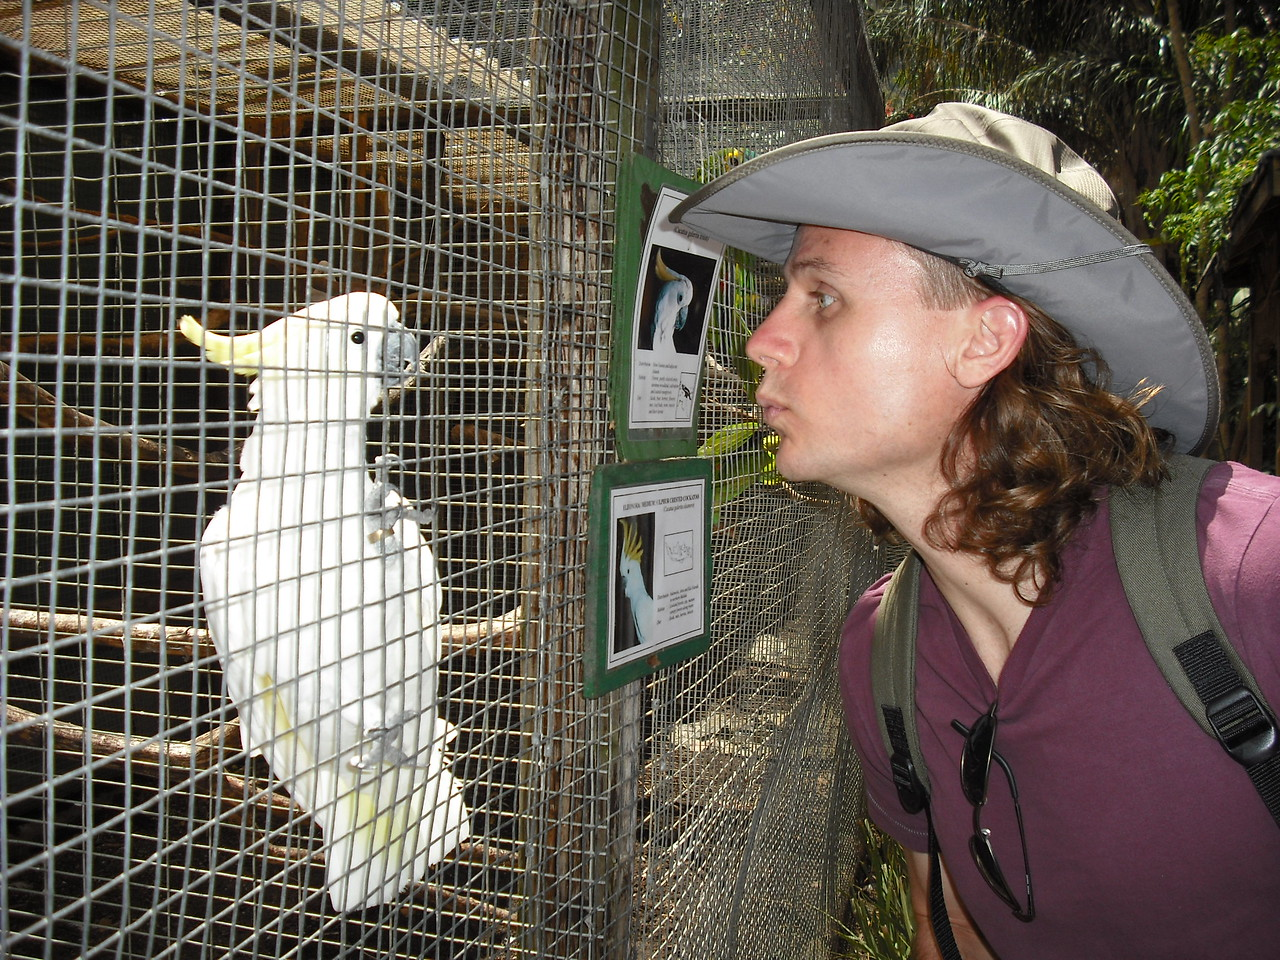 Does it look like I'm trying to kiss that bird?  What the hell am I doing?  I can't remember.